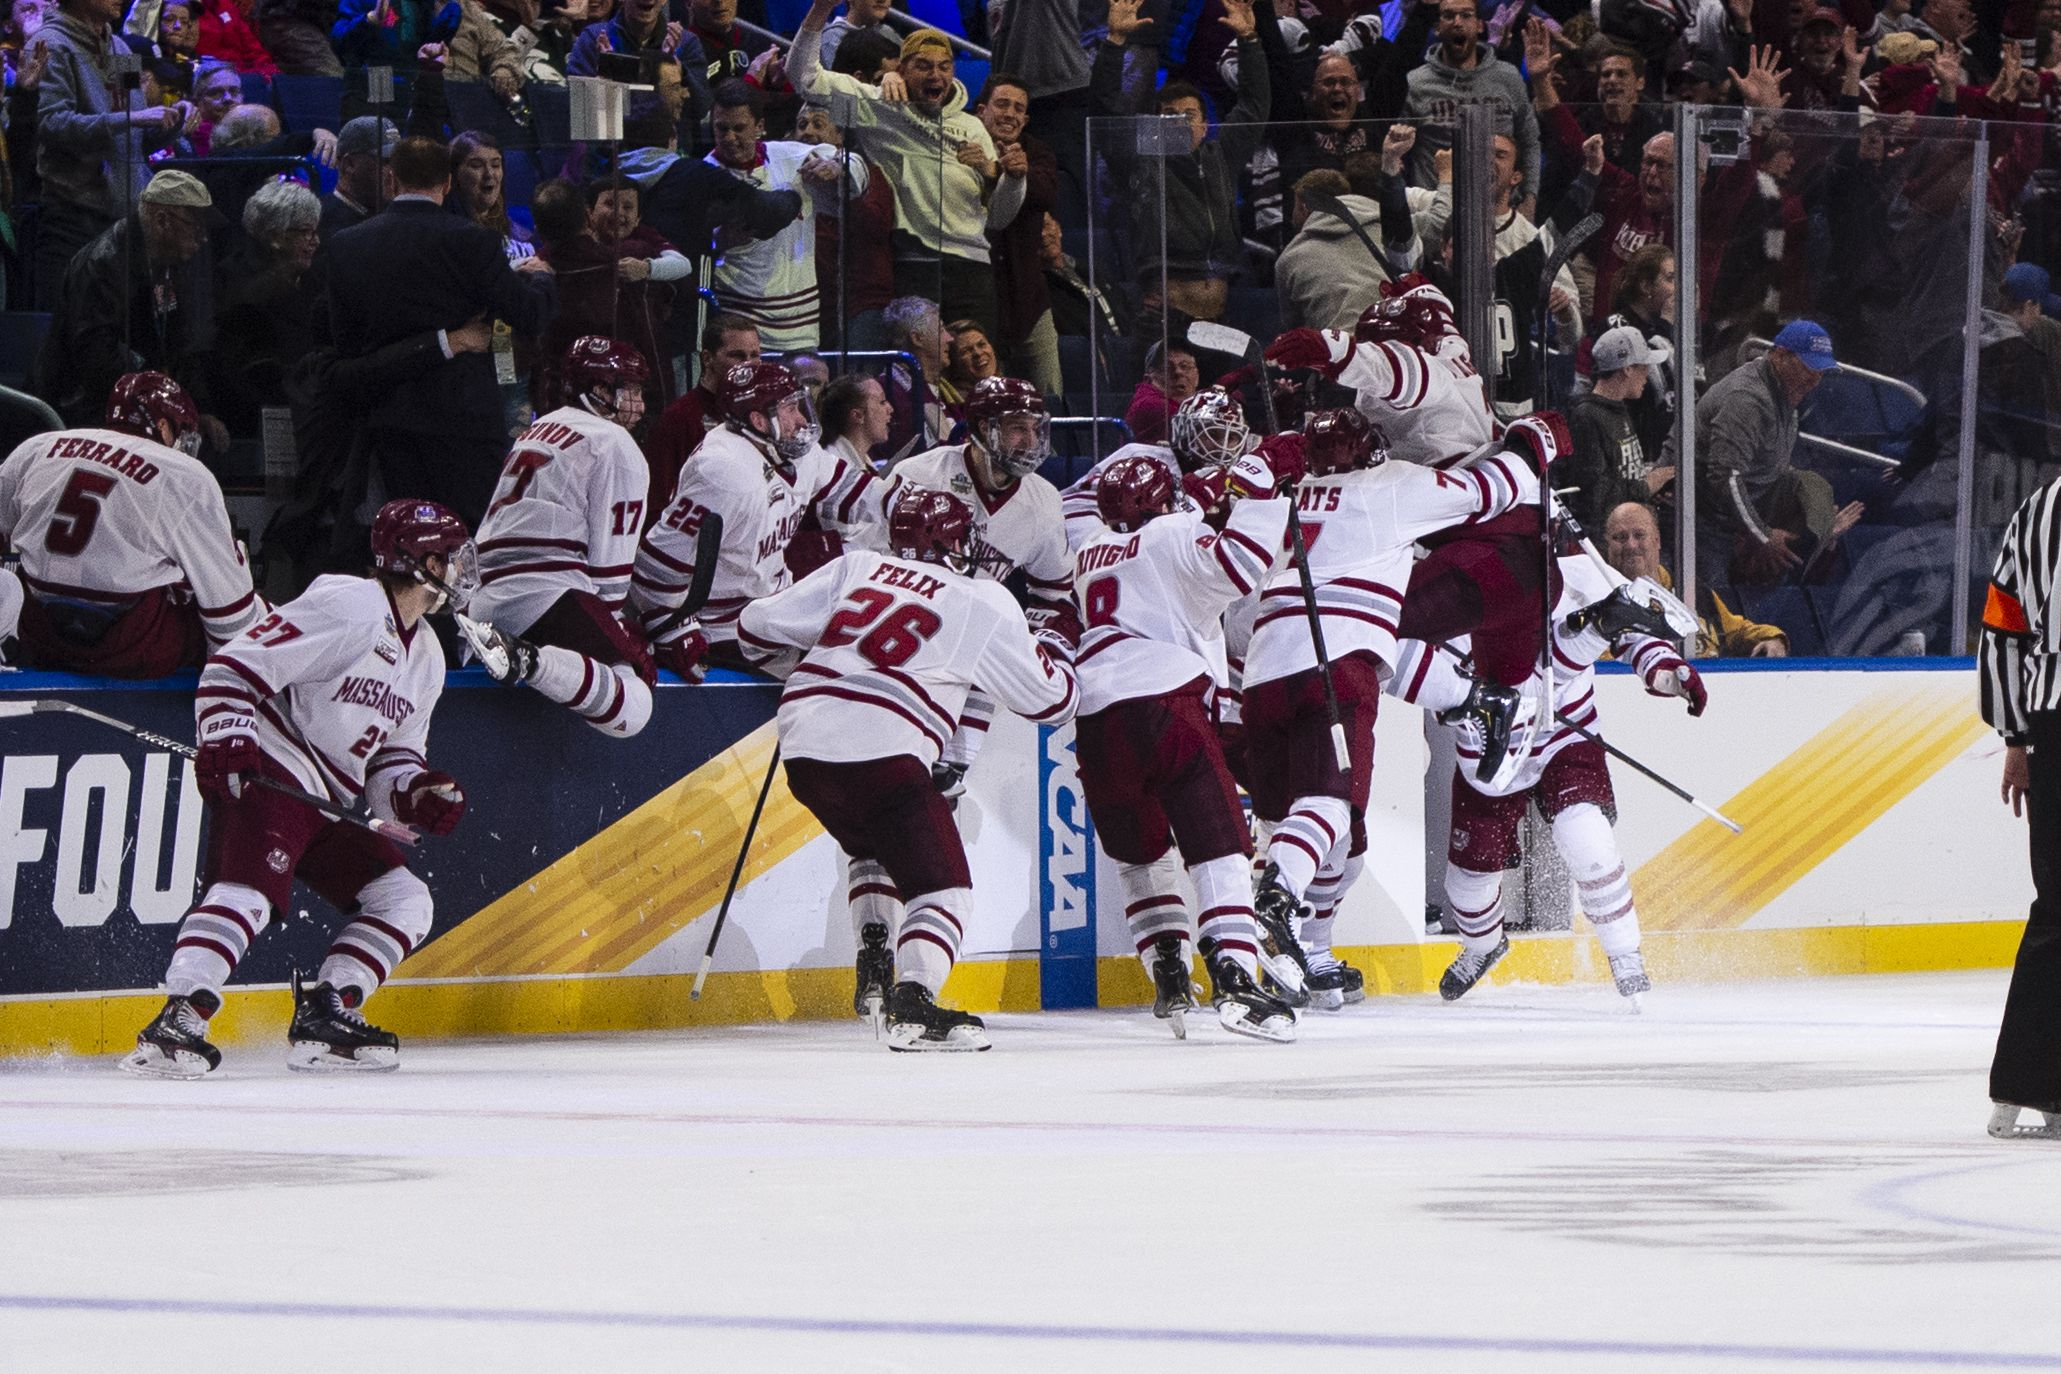 UMass celebrates their win